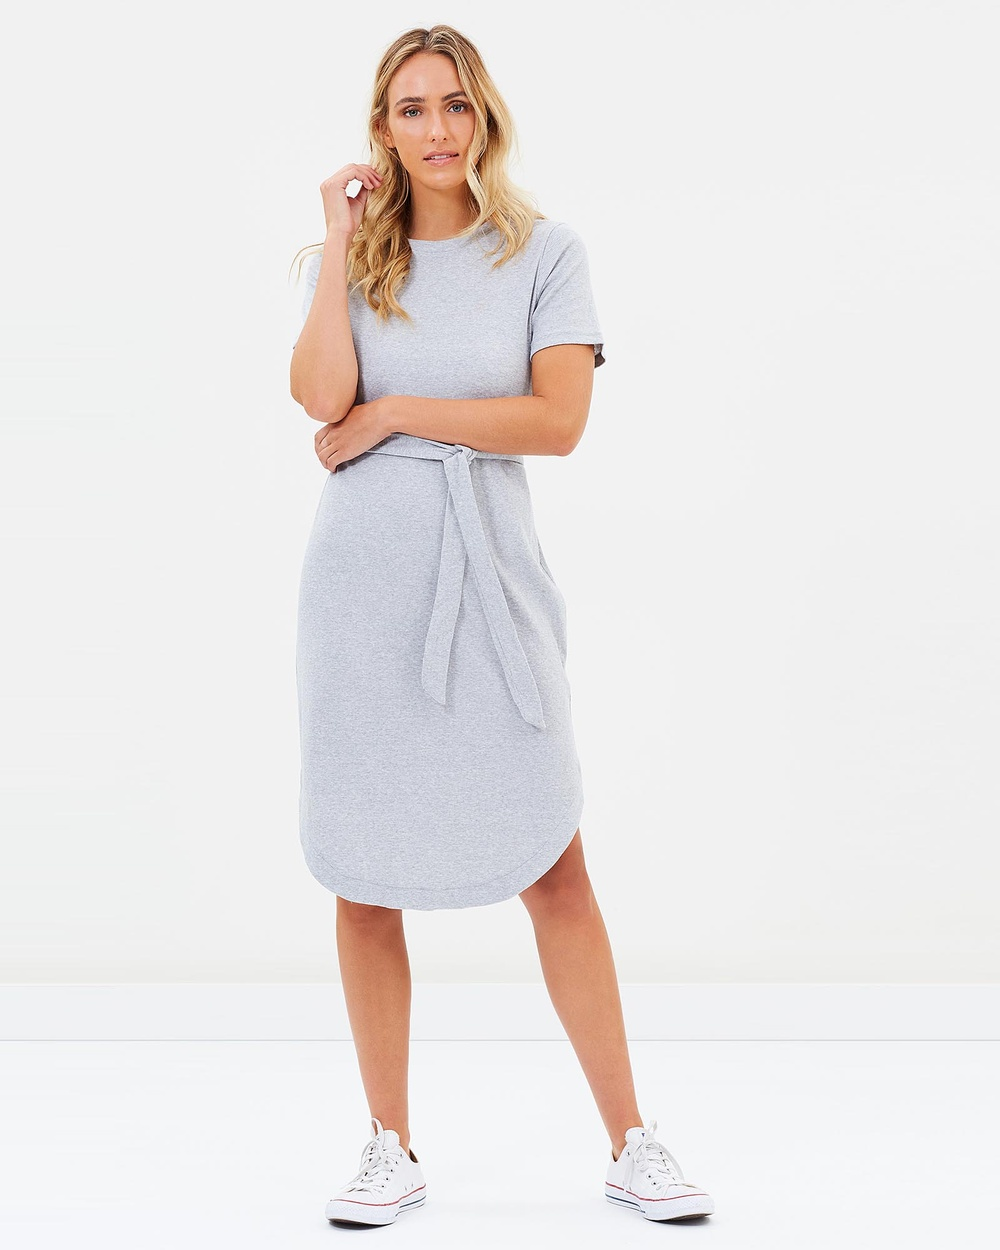 Elwood Rosette Dress Grey Marle Dresses Grey Marle Rosette Dress Grey Marle